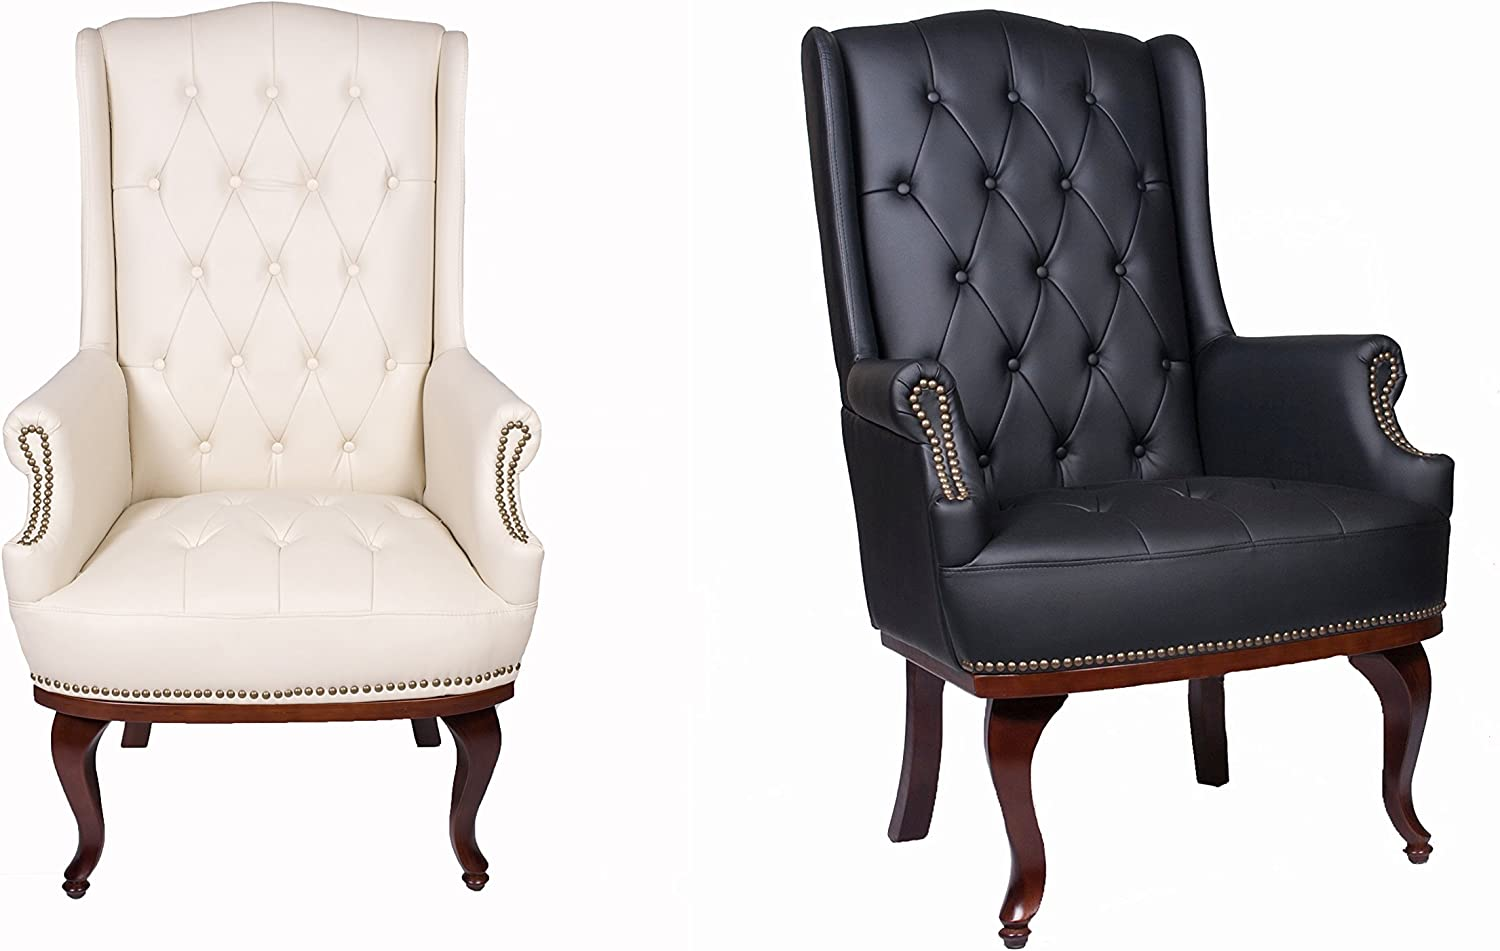 ANGEL HOME /& LEISURE Queen Anne Fireside High Back wing back cream leather chair Chesterfield type armchair Beige